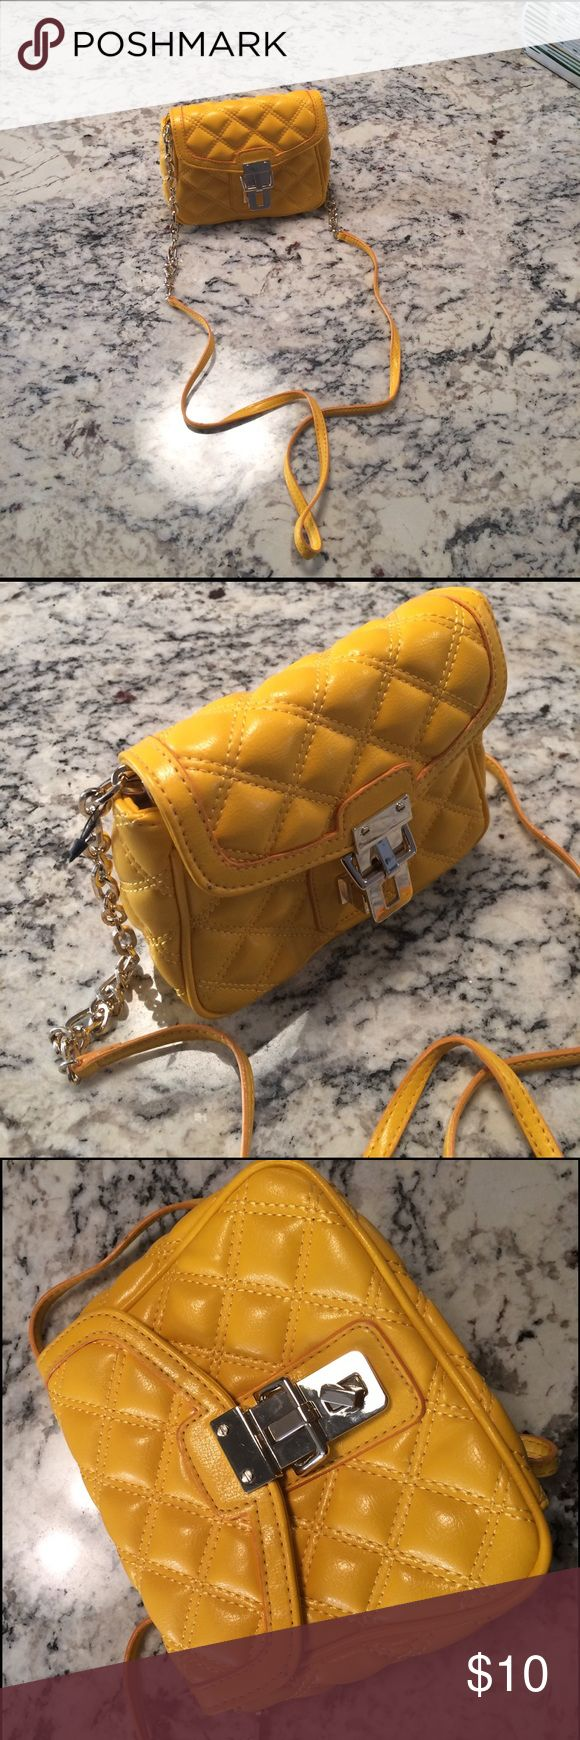 Banana Republic yellow purse Banana Republic quilted faux leather yellow shoulder bag. Small. Strap can sit inside and makes a nice clutch. Never used. Banana Republic Bags